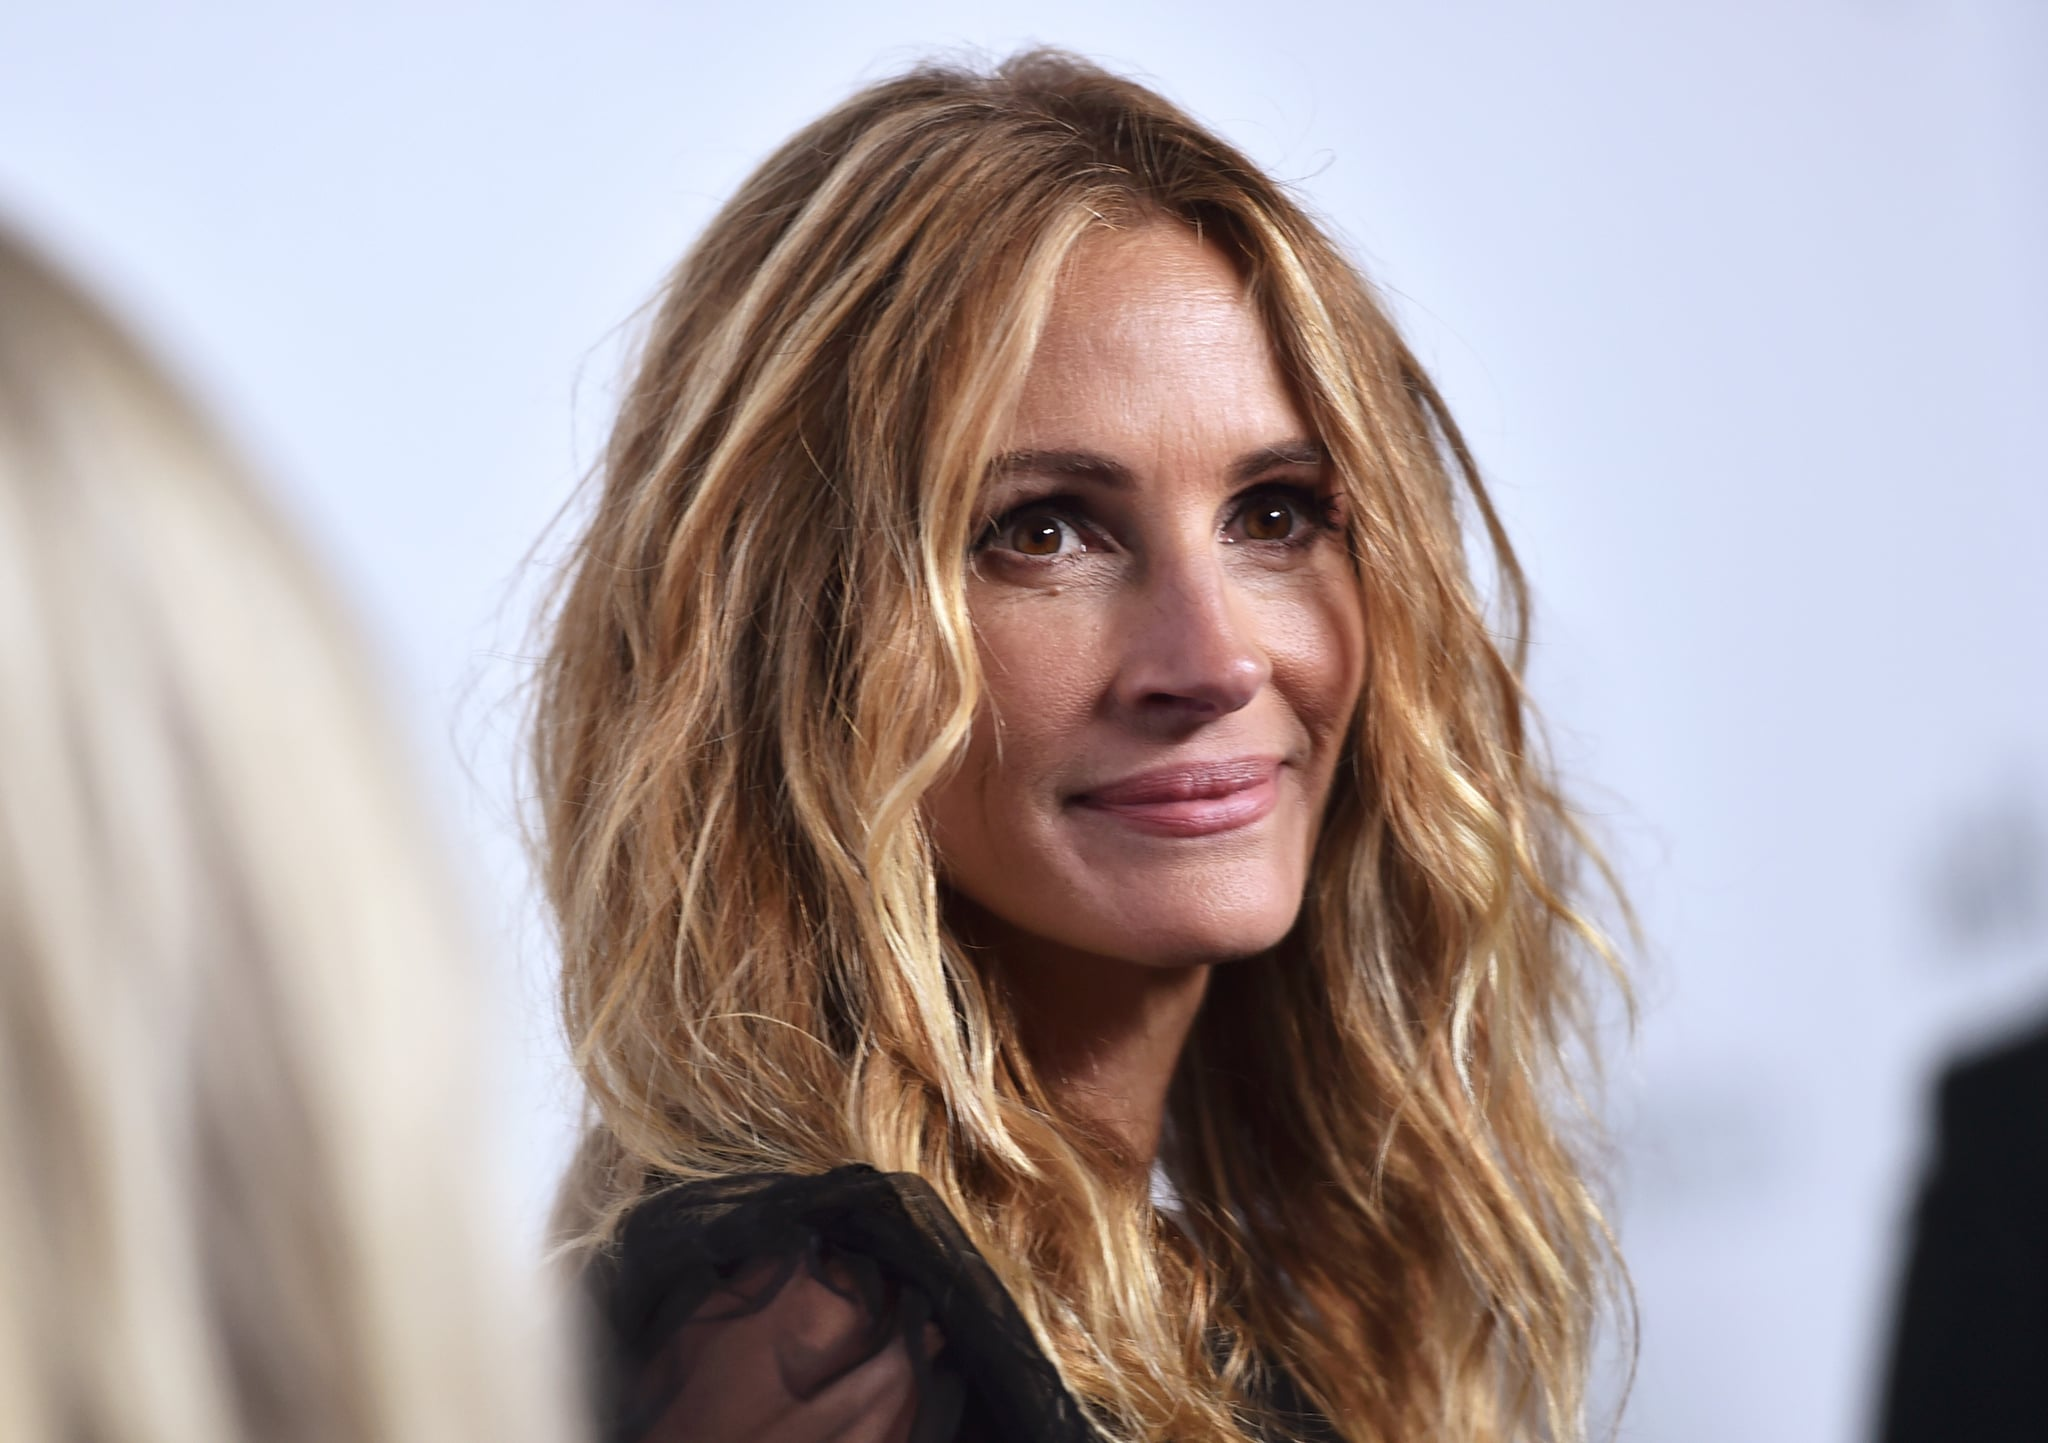 BEVERLY HILLS, CA - OCTOBER 13:  Honoree Julia Roberts attends the amfAR Gala Los Angeles 2017 at Ron Burkle's Green Acres Estate on October 13, 2017 in Beverly Hills, California.  (Photo by Alberto Rodriguez/amfAR/Getty Images for amfAR)